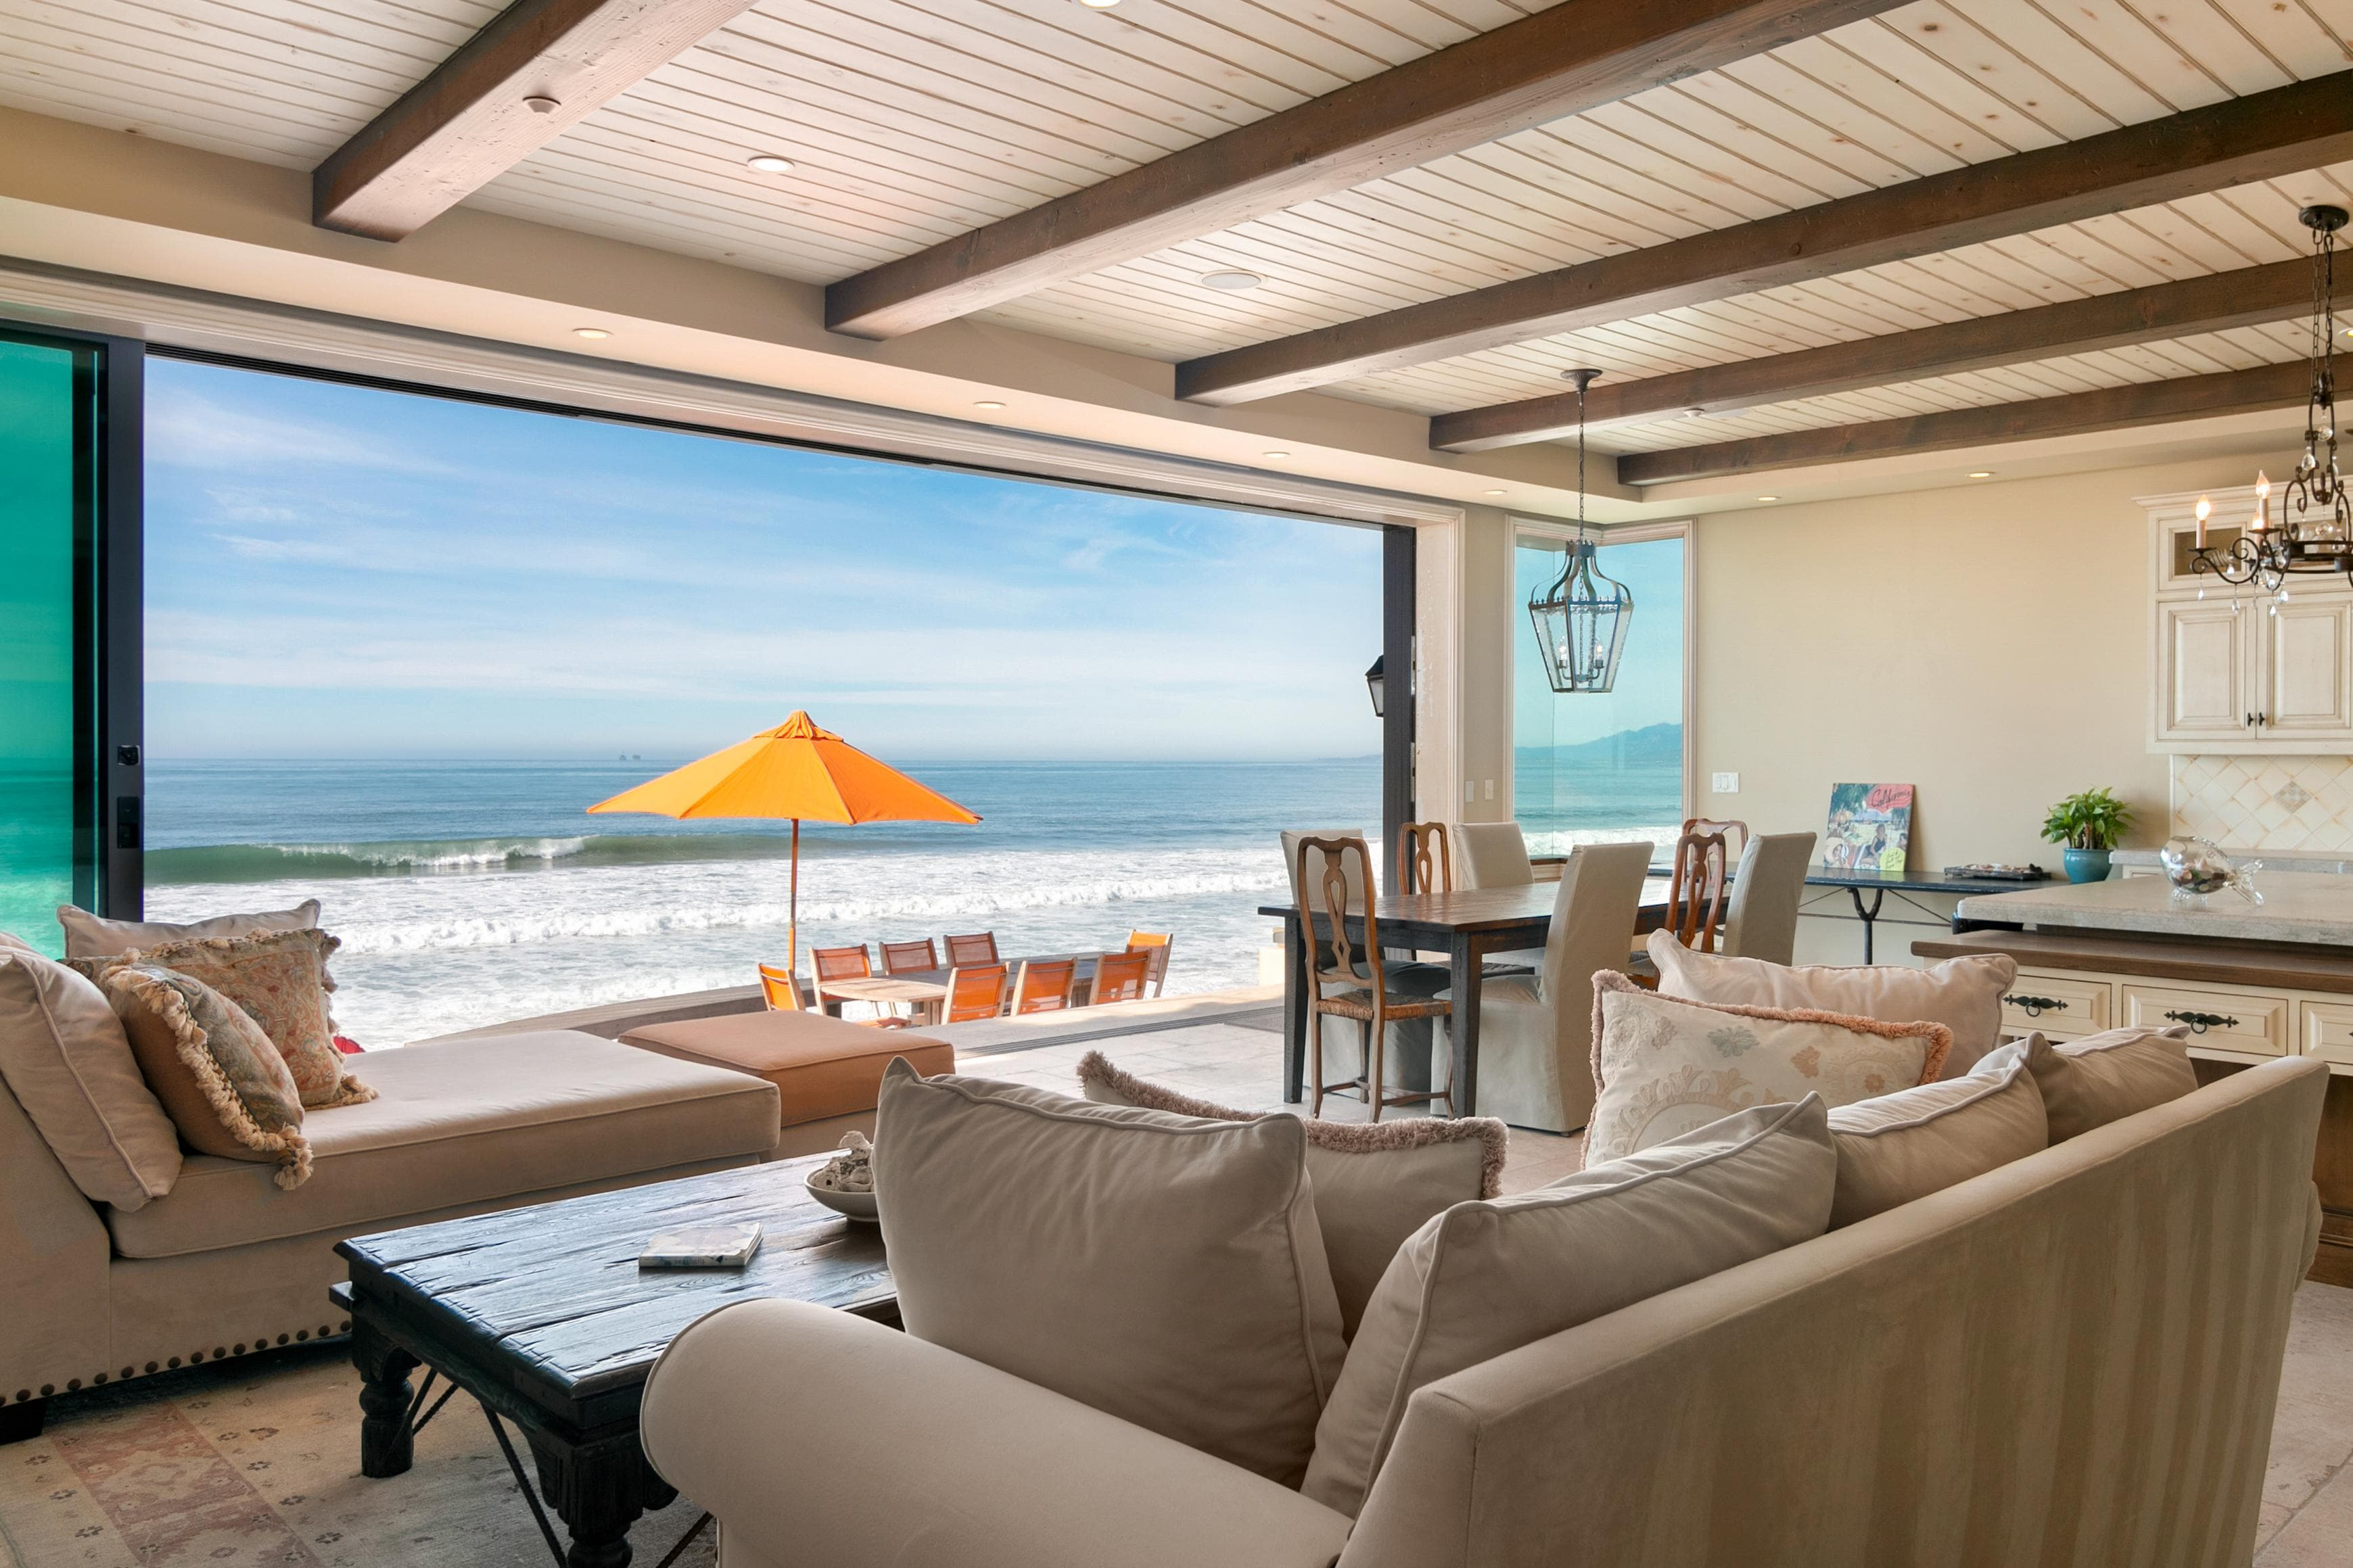 Welcome! This beachfront gem is professionally managed by TurnKey Vacation Rentals.